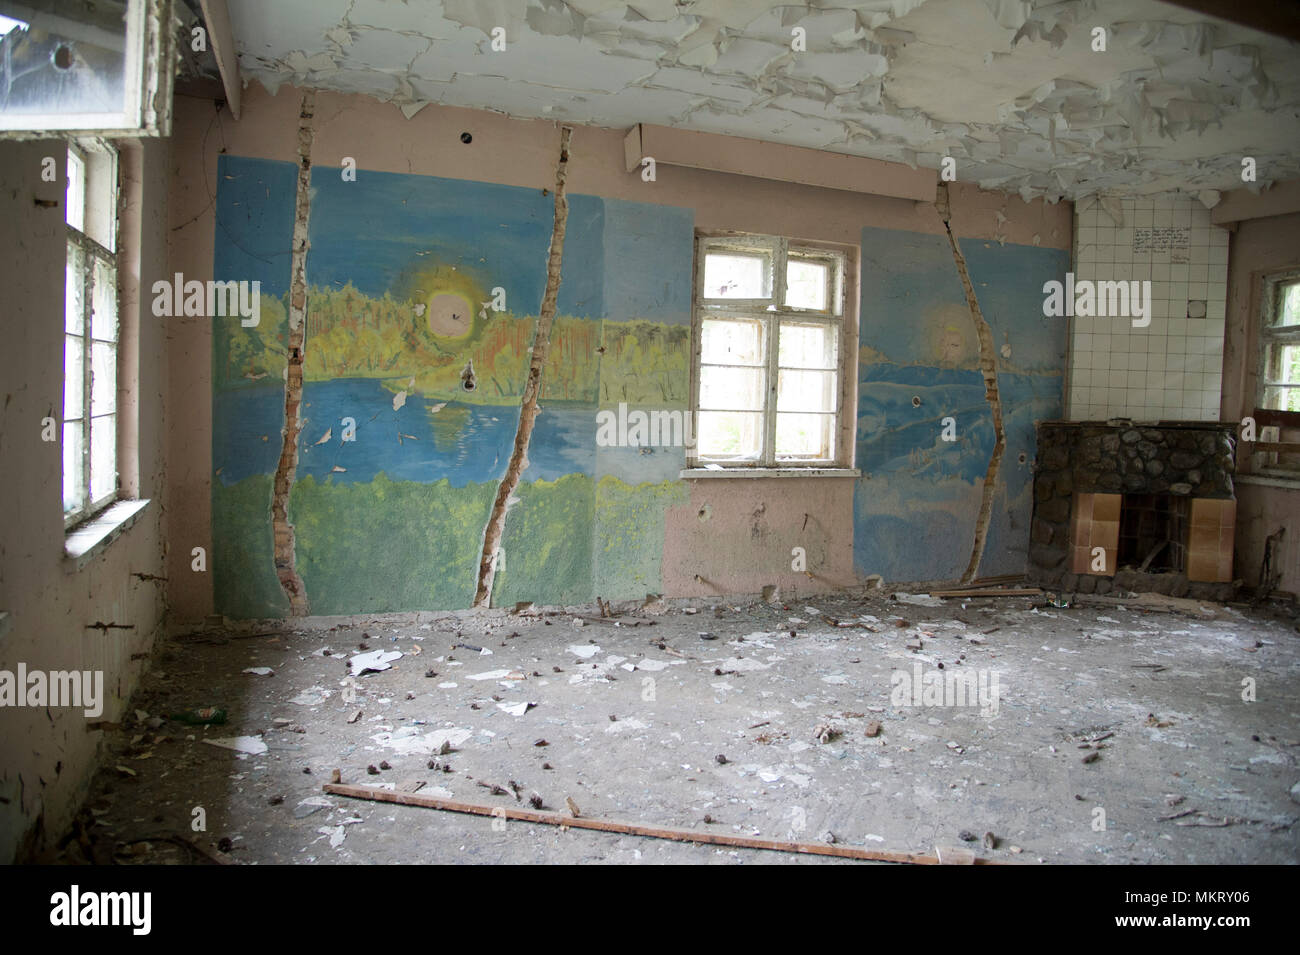 Ruined house in the former Nazi German military base, used from 1957 to 1993 by Soviet Union as military communication garrison of Northern Group of F - Stock Image